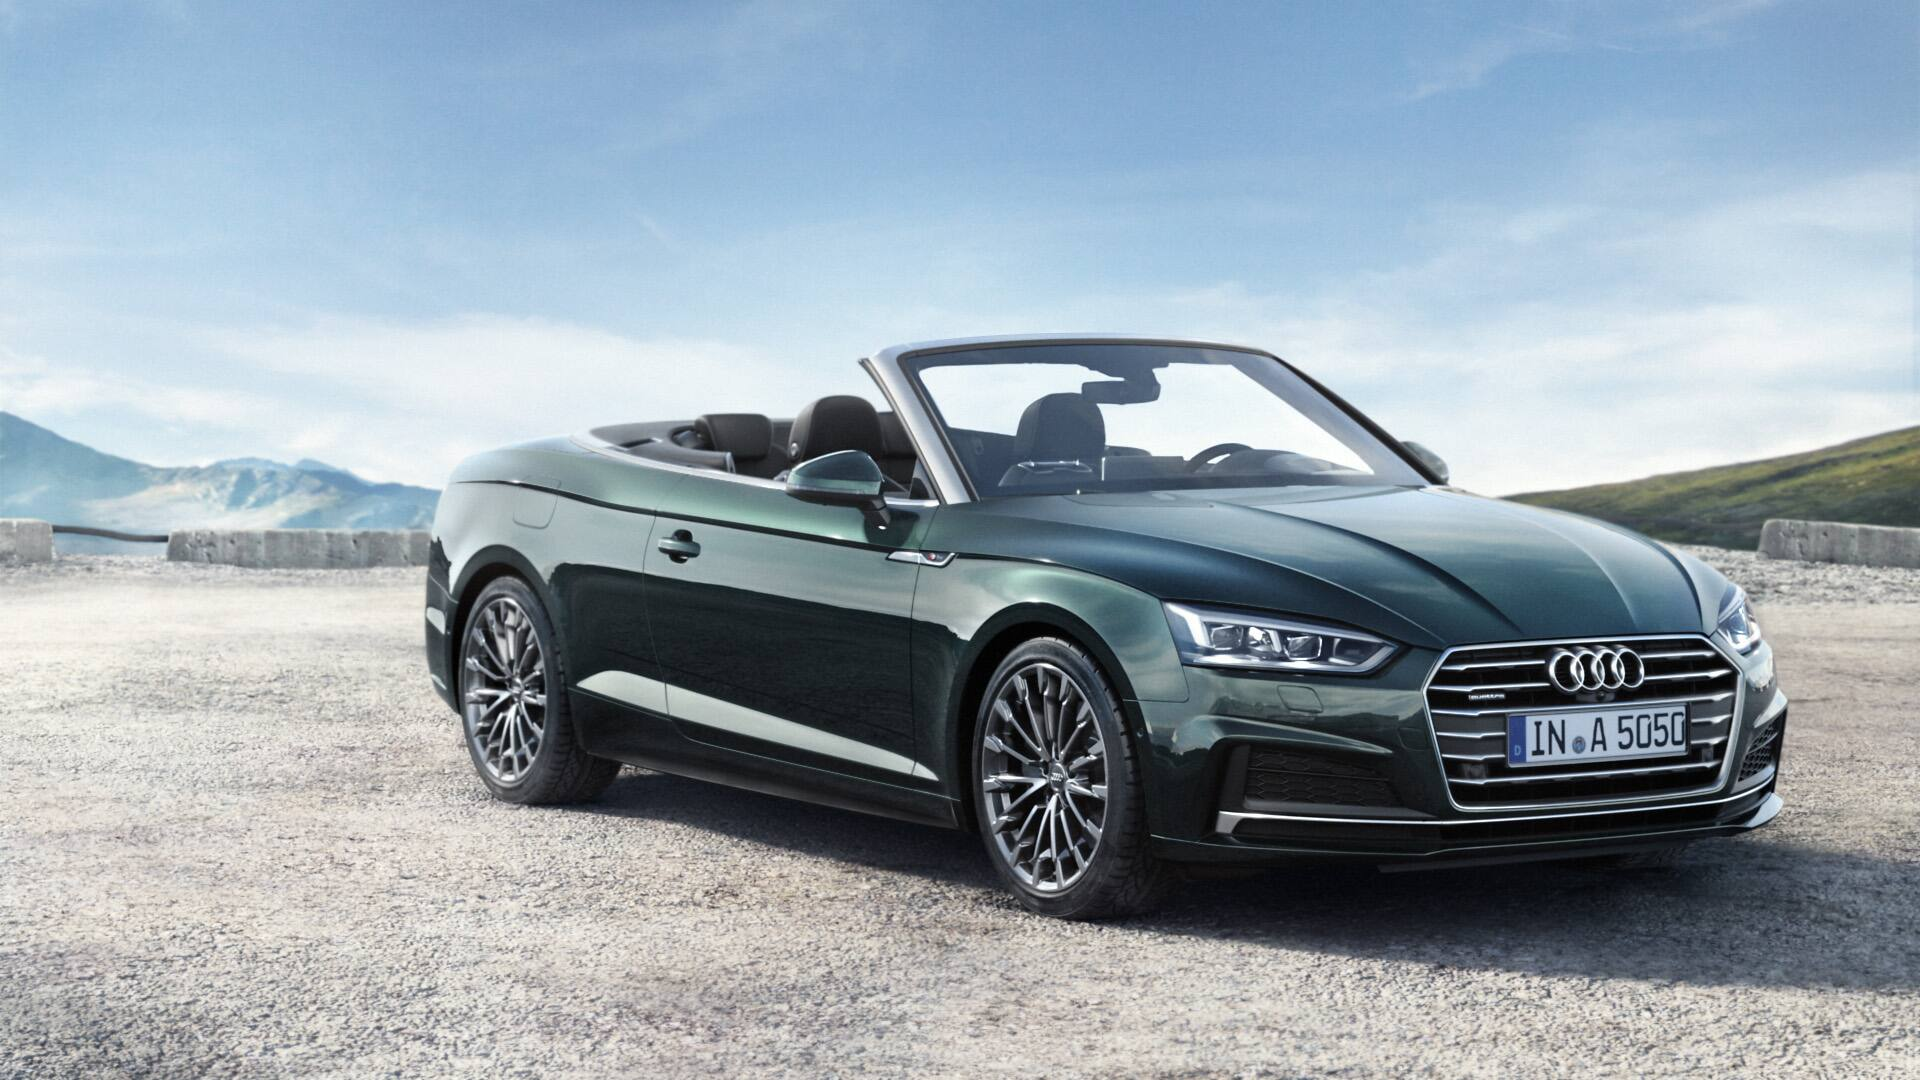 Up To Four People Can Enjoy Sheer Driving Pleasure Aboard The A5 Cabriolet